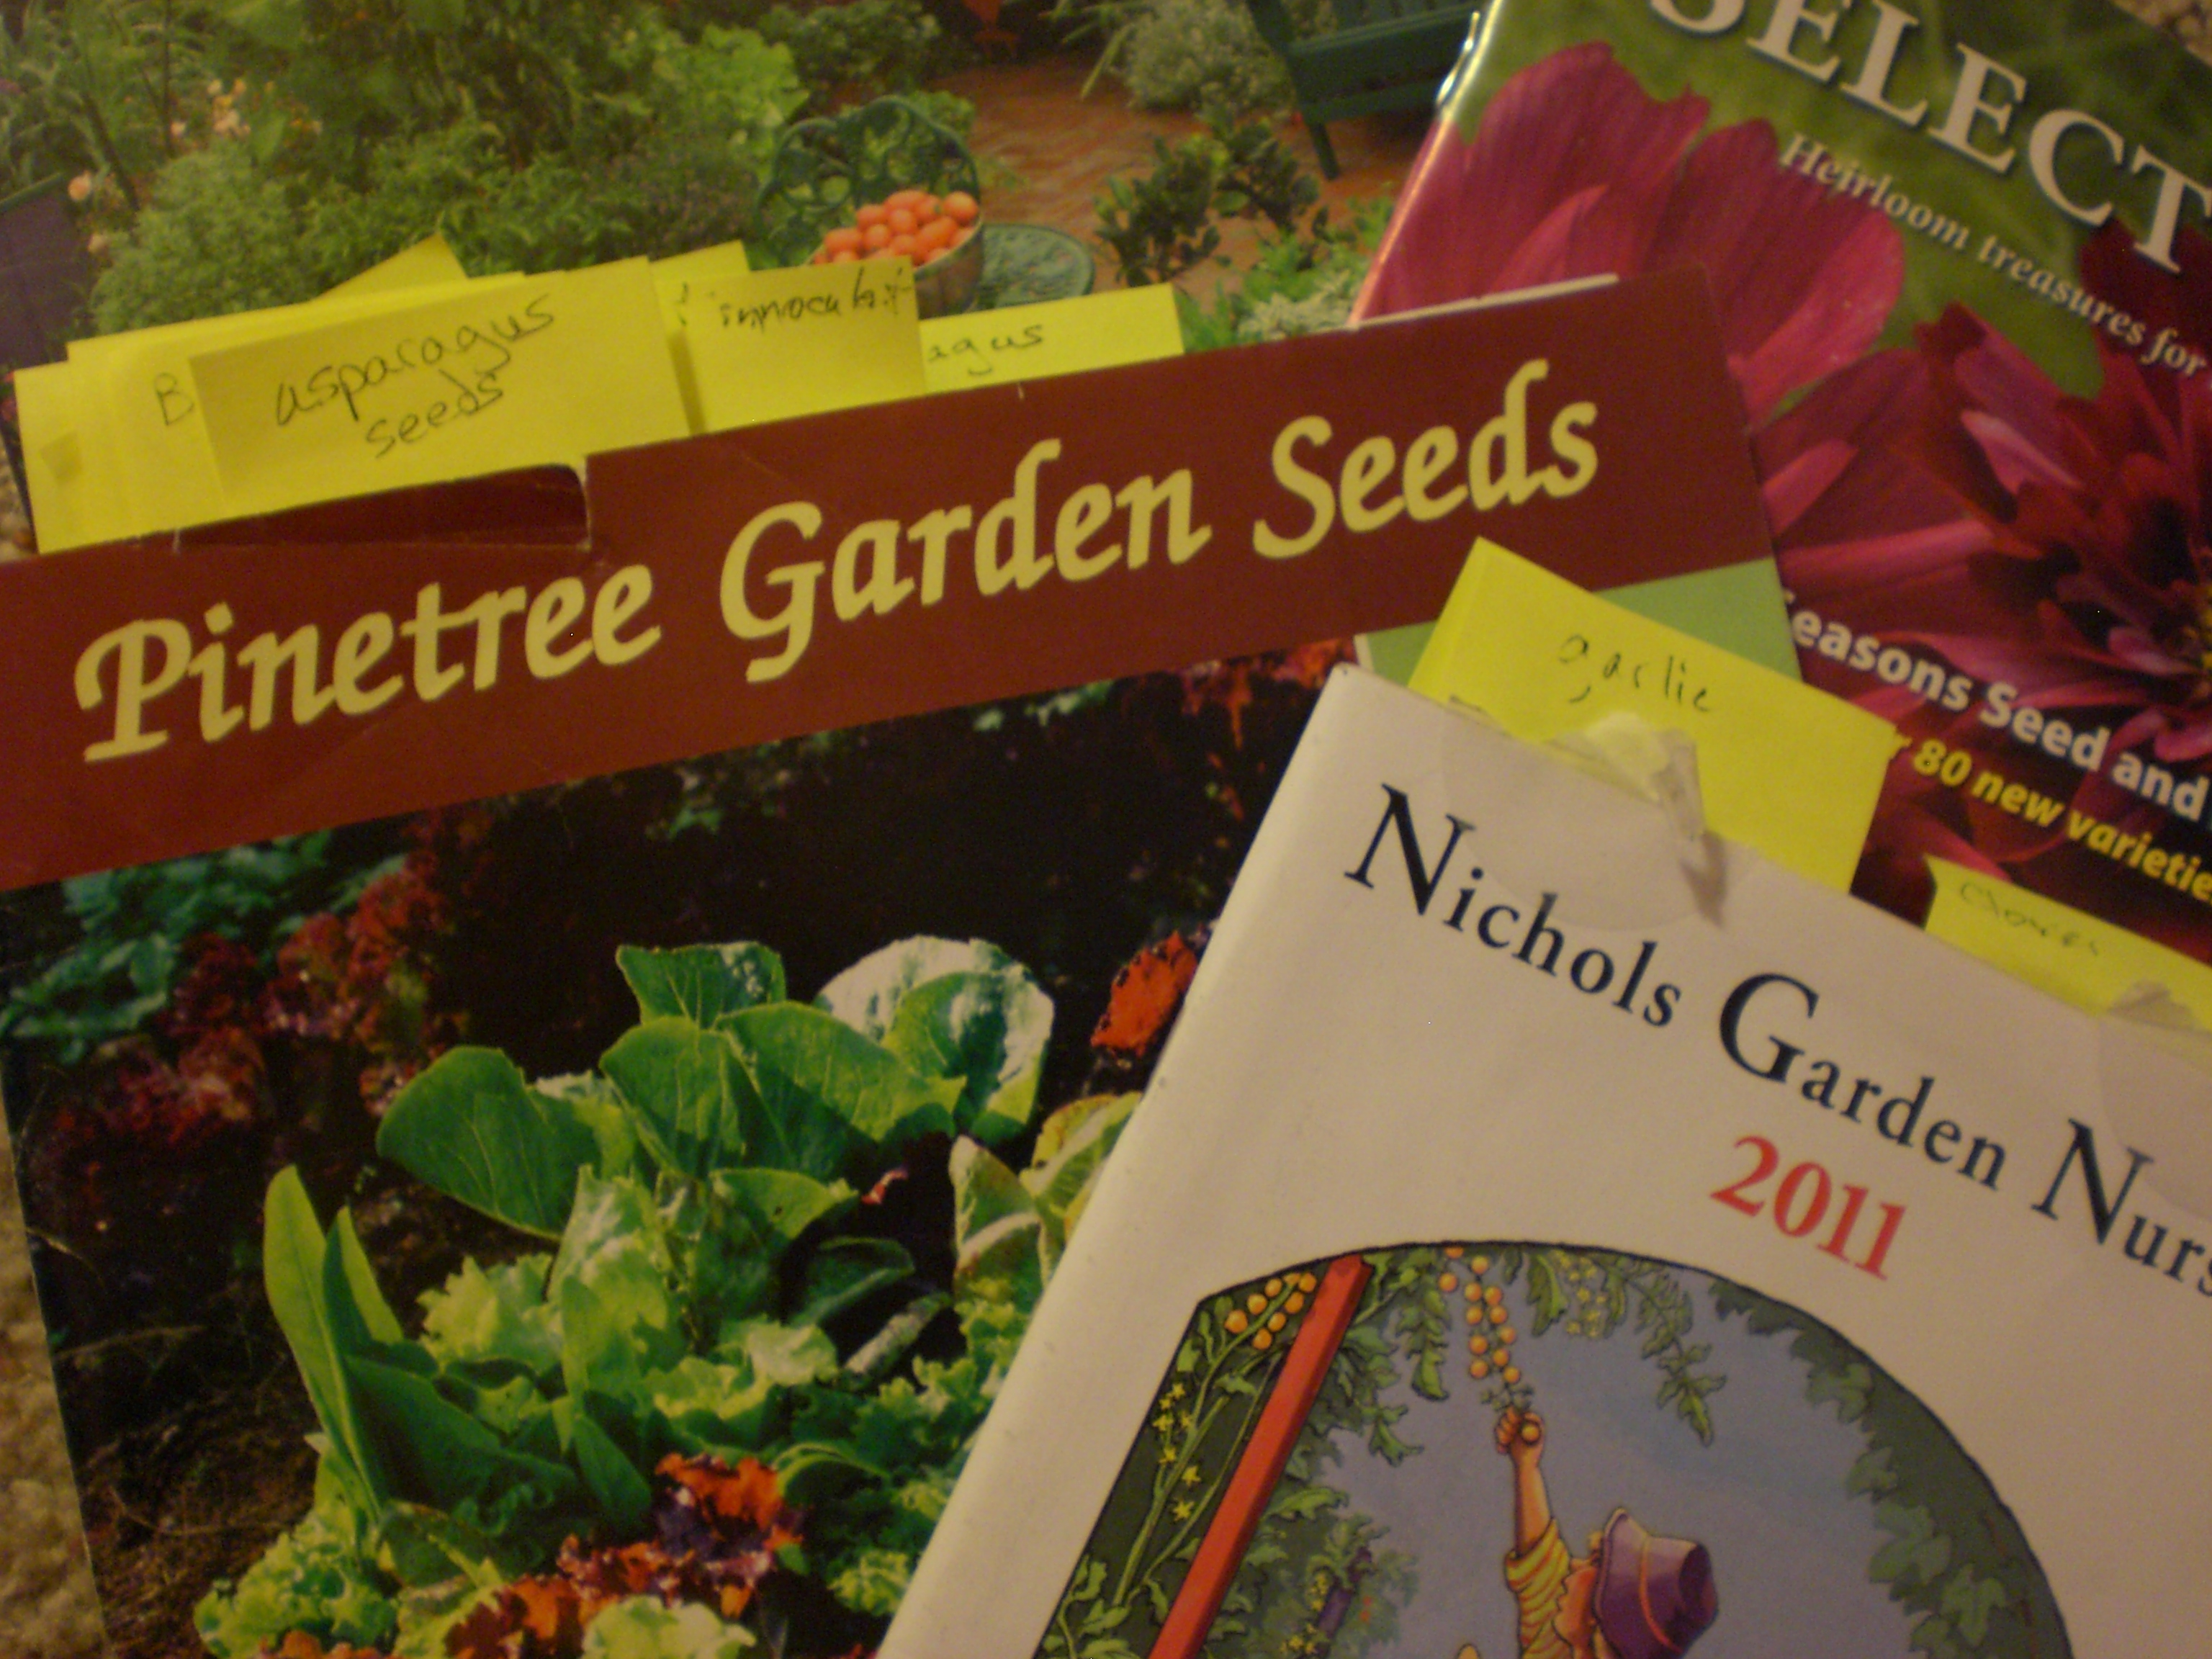 Seed Catalogues | Strawberry Fields for Breakfast